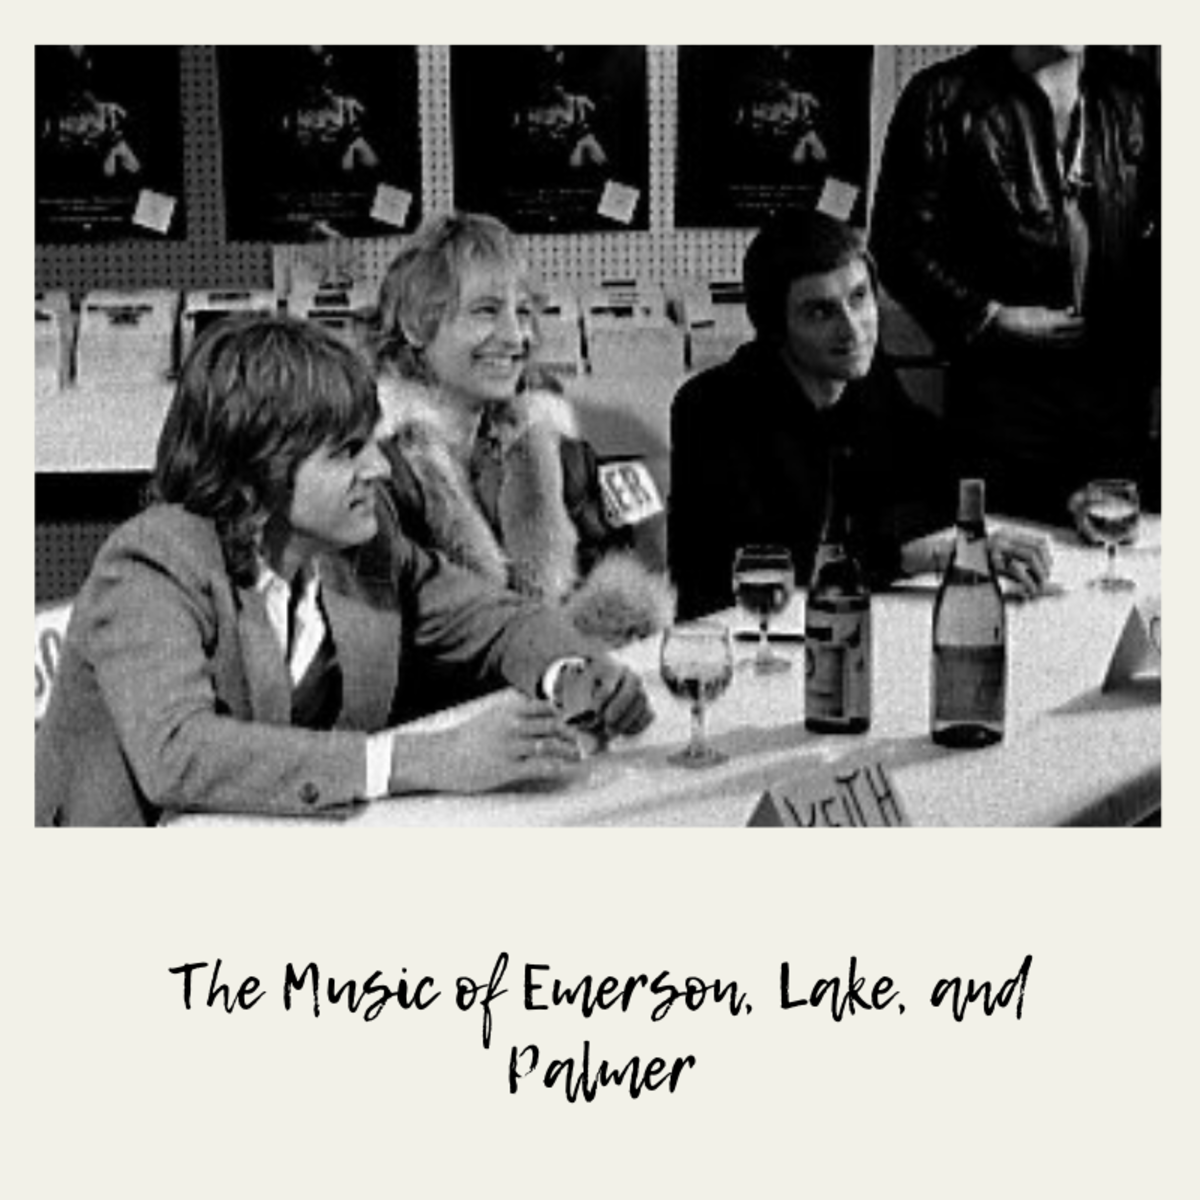 Emerson, Lake, and Palmer at Records on Wheels, Toronto, Feb. 2 or 3, 1978.